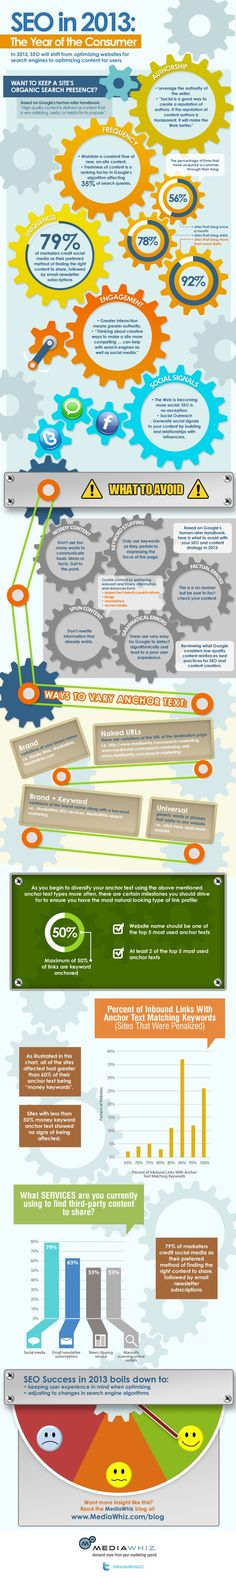 Year of the Consumer 2013.  Info on how online search engines are optimizing for quality of content.